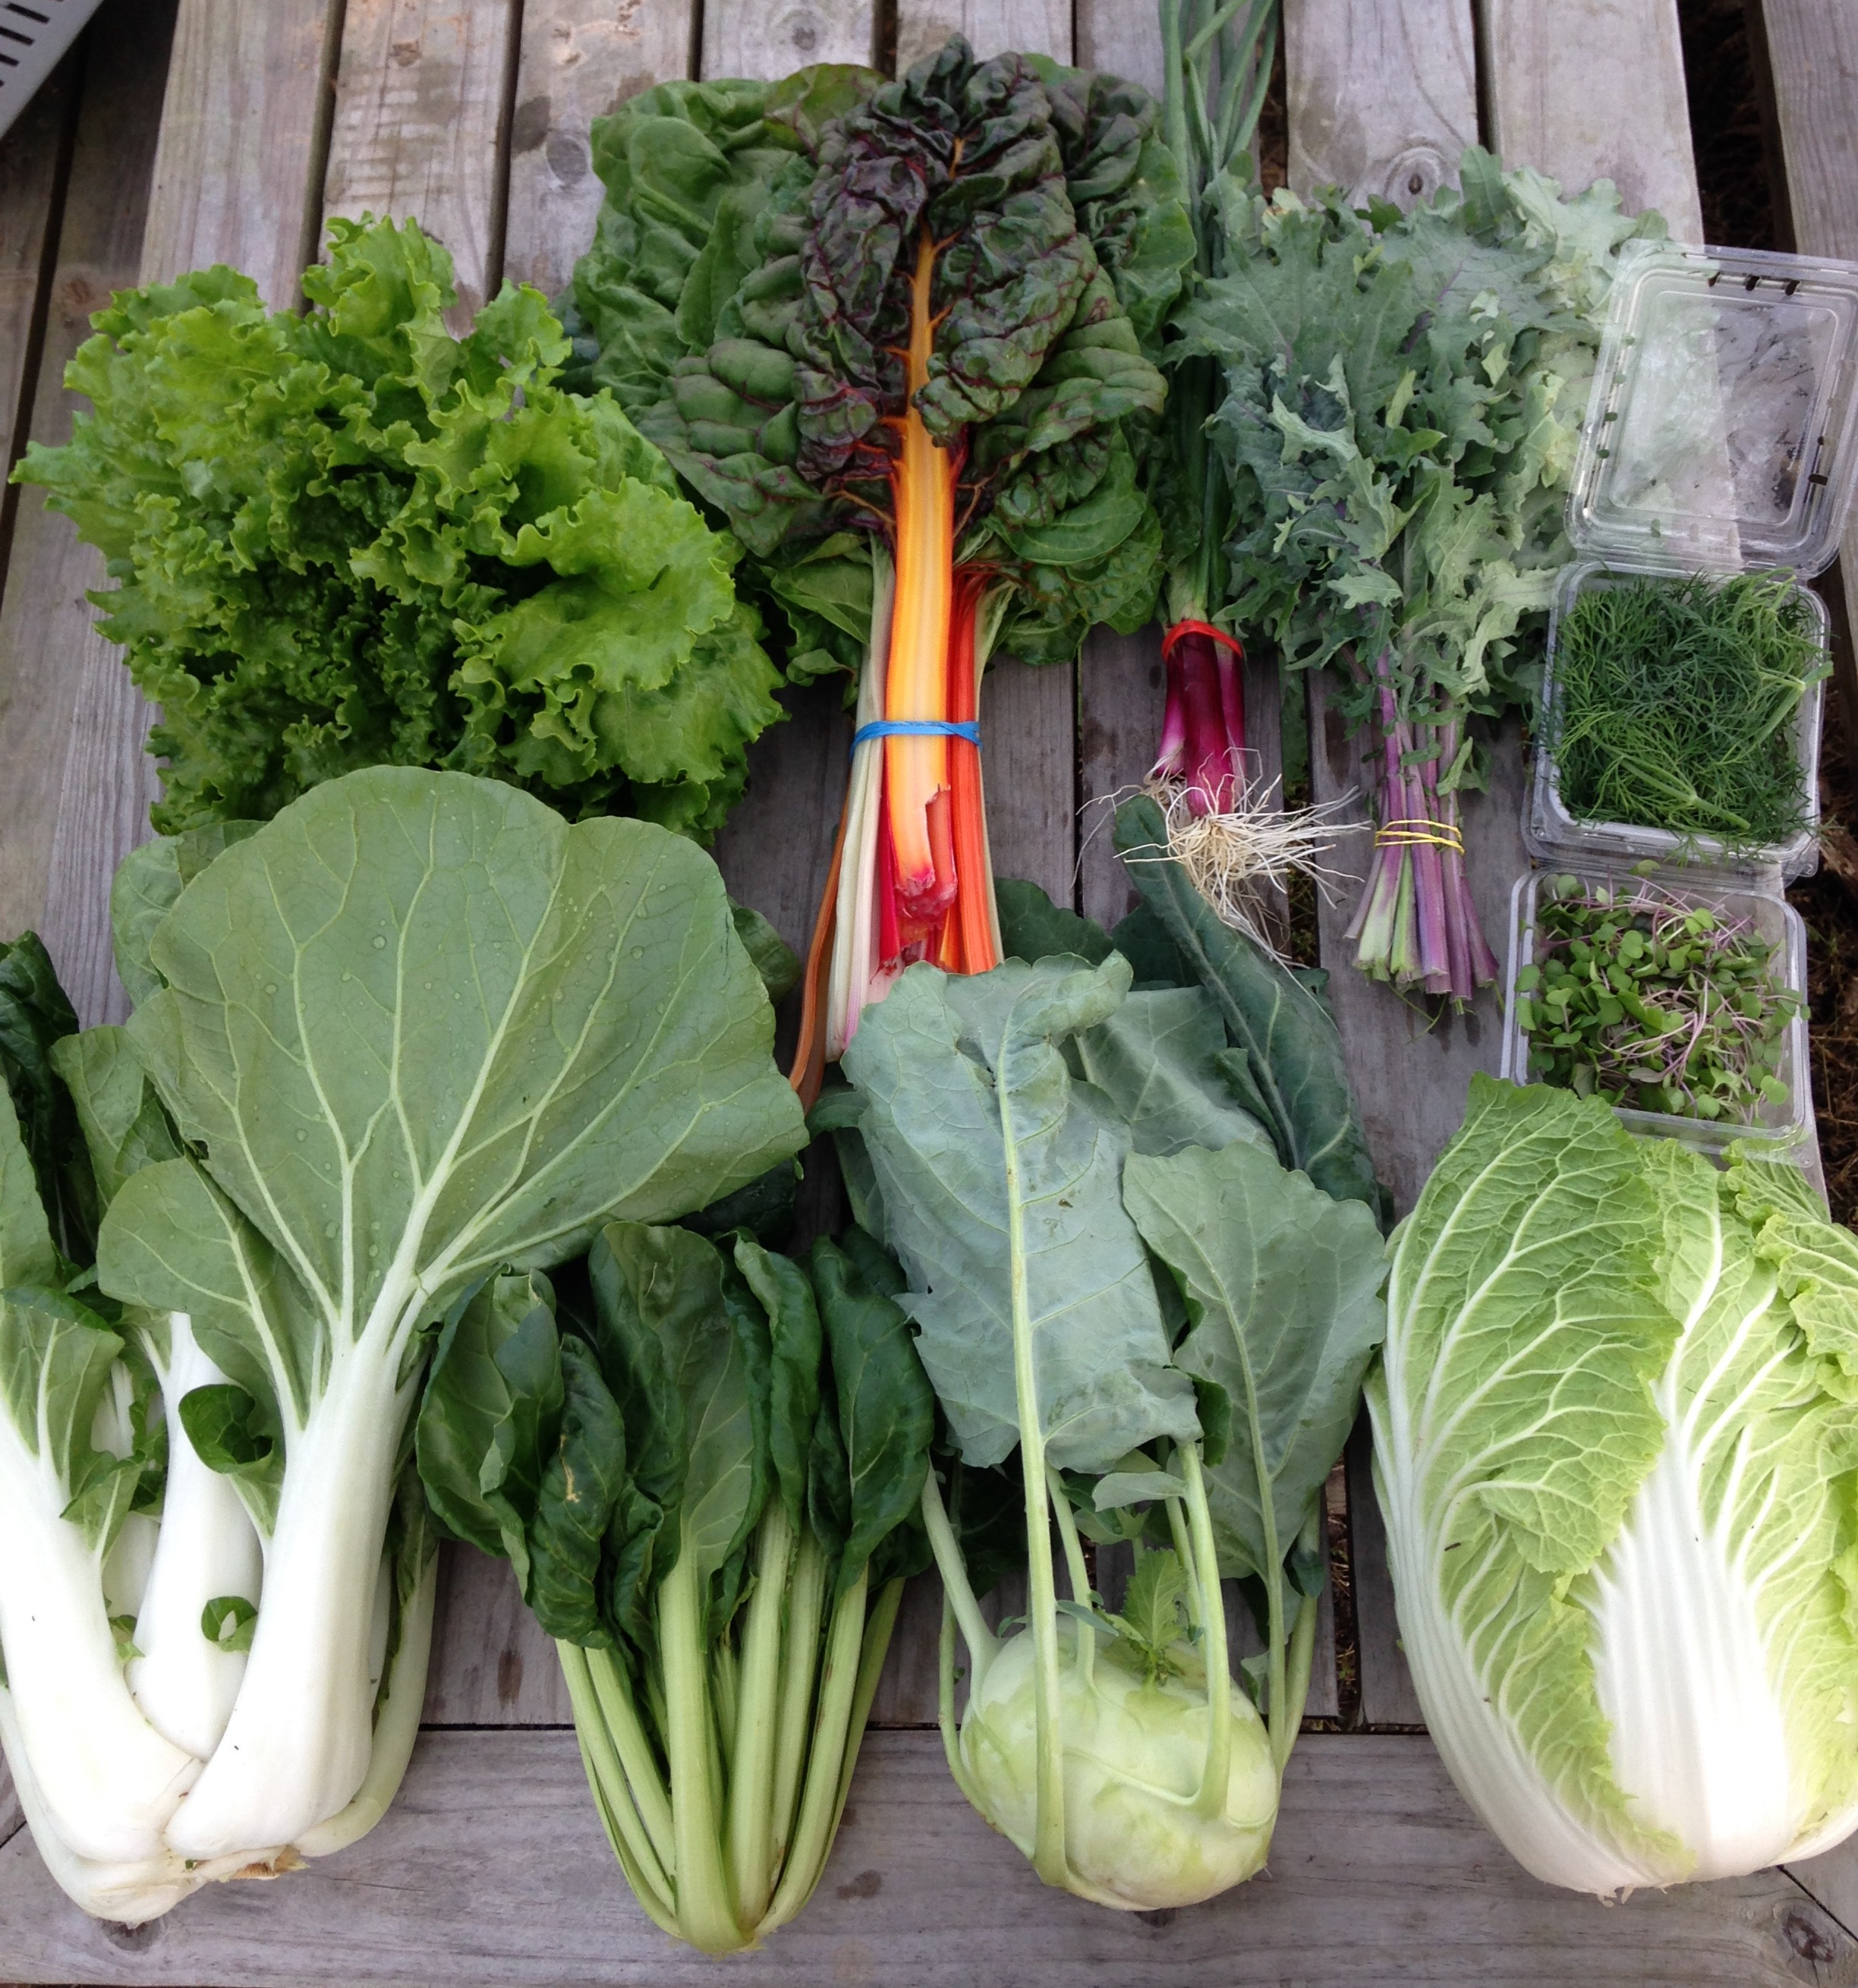 from top left to right: Lettuce, Swiss Chard, Spring Onions, Kale, Dill, Micro Greens  from bottom left to right: Bok Choy, Yukina Savoy, Kohlrabi, Napa Cabbage